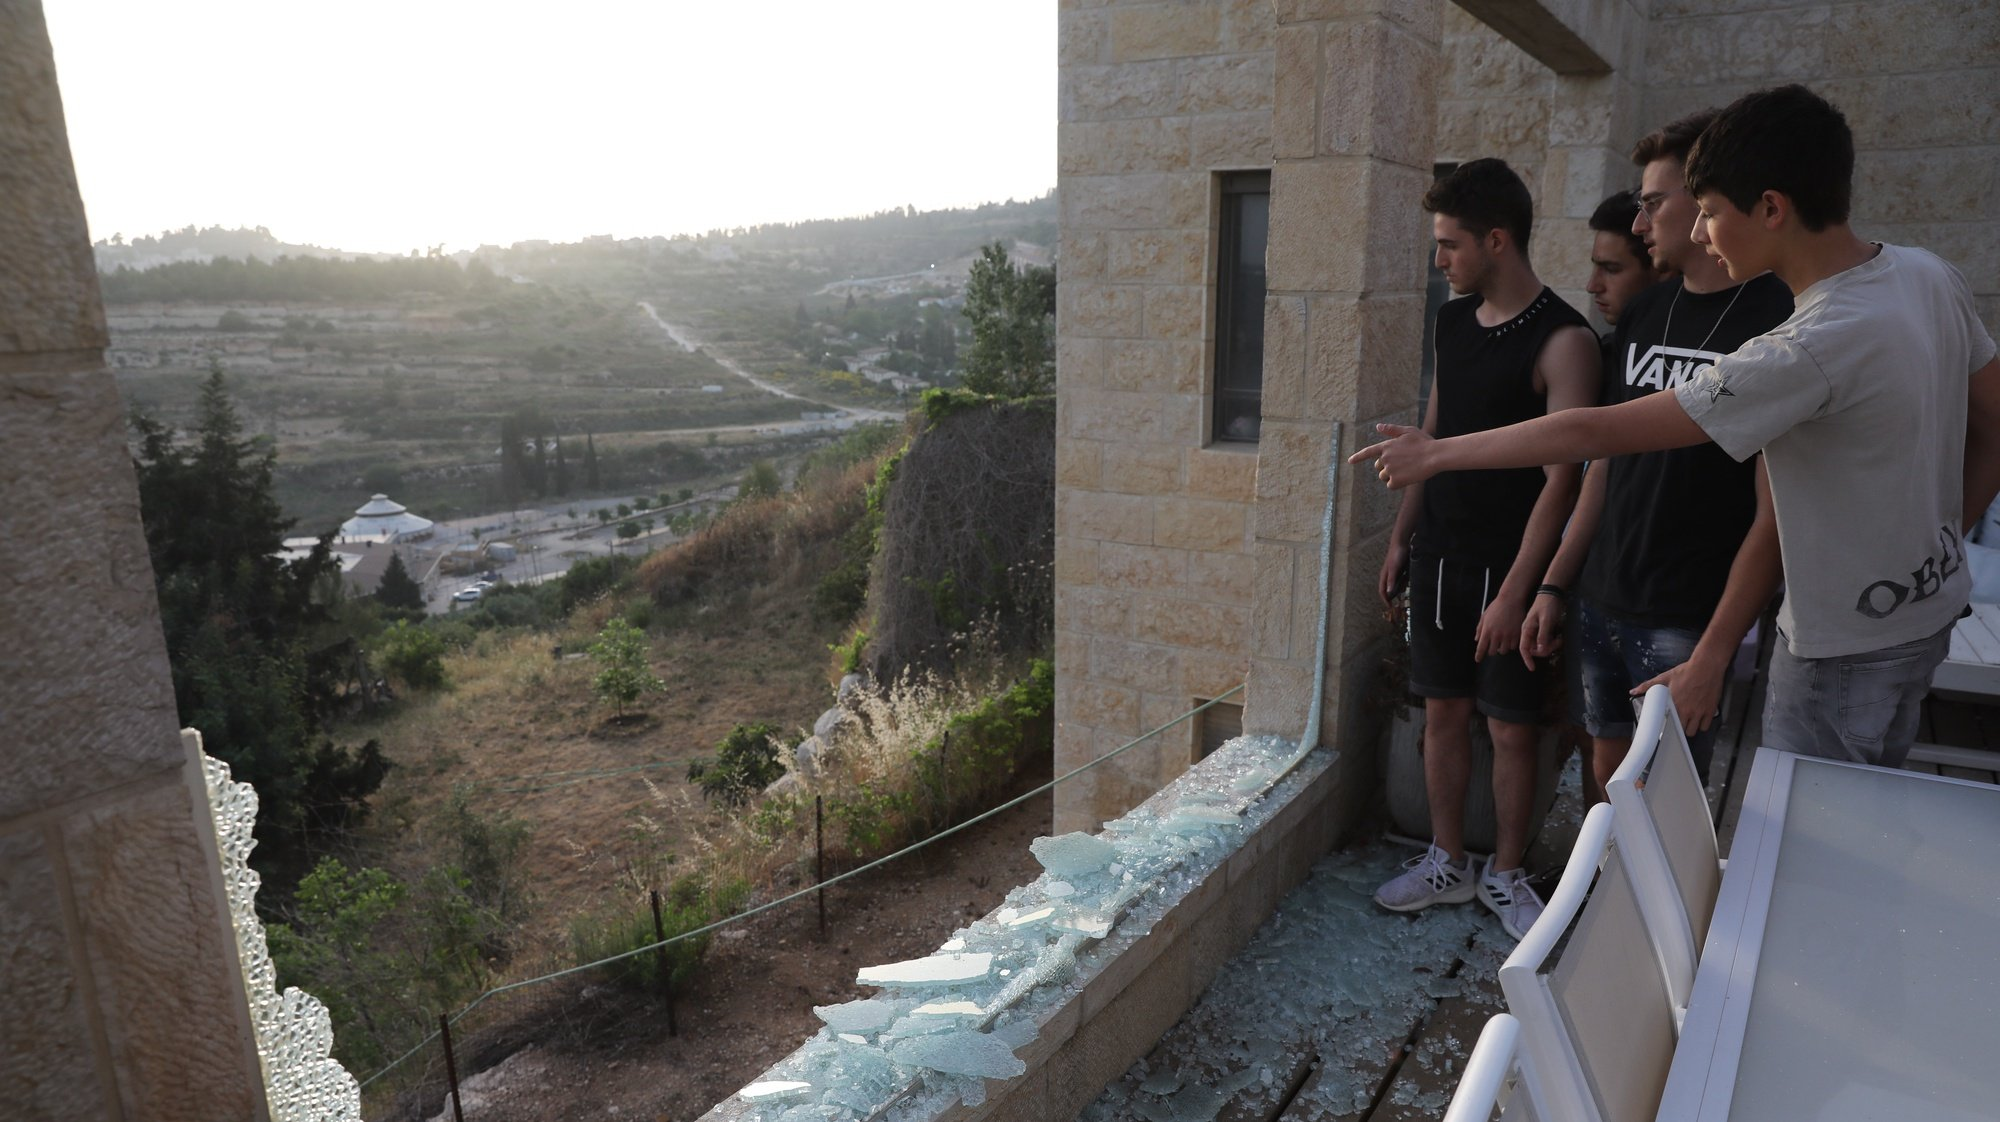 epa09189820 Israelis look out from a broken window in their home, as a result from missile fired from Gaza Strip, at the village of Beit Nekufa near Jerusalem, Israel, 10 May 2021 as tensions rise between Israel and Palestinians.  EPA/ABIR SULTAN